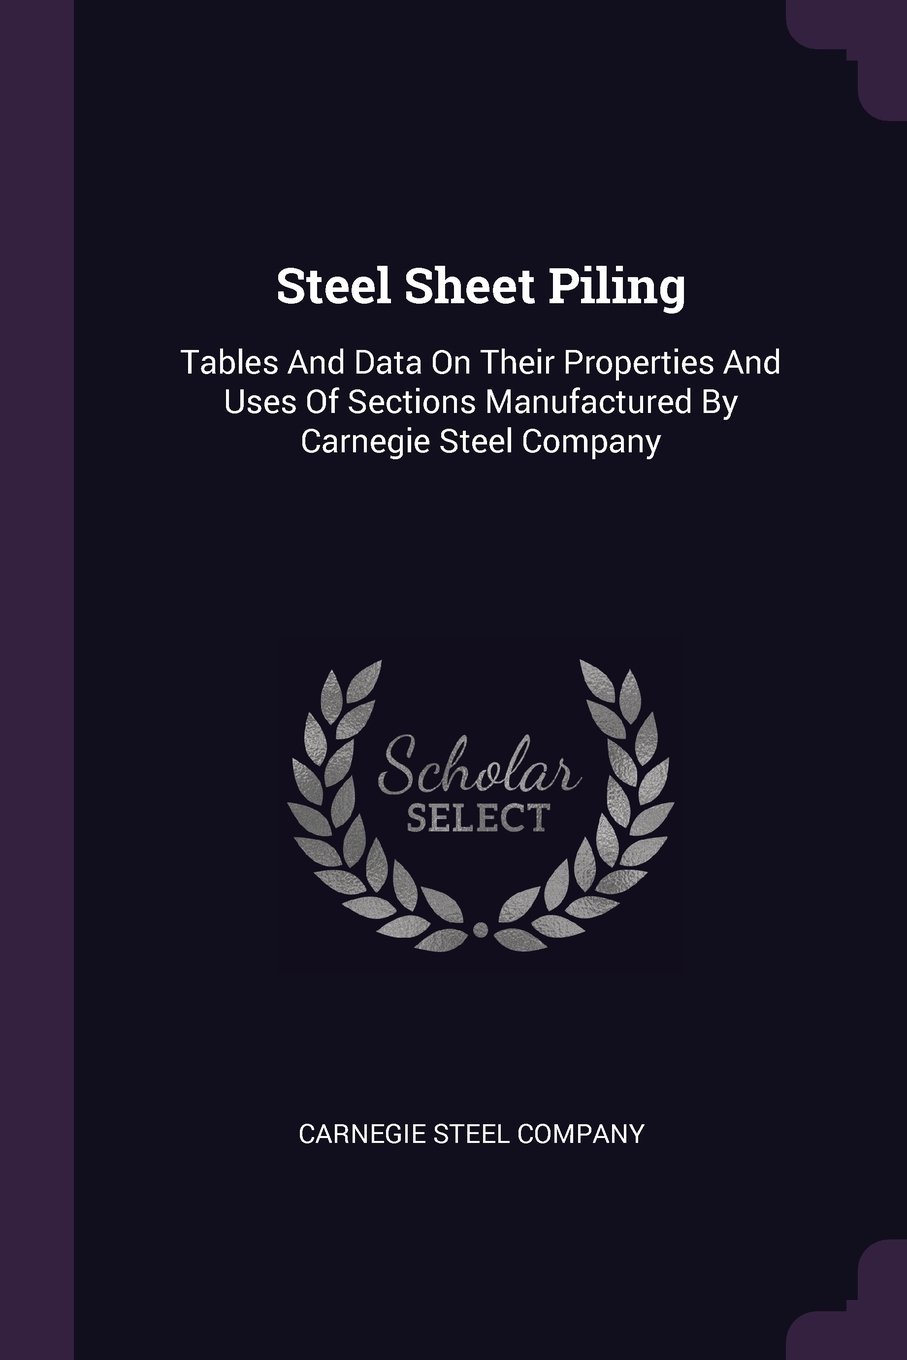 Steel Sheet Piling: Tables And Data On Their Properties And Uses Of Sections Manufactured By Carnegie Steel Company PDF